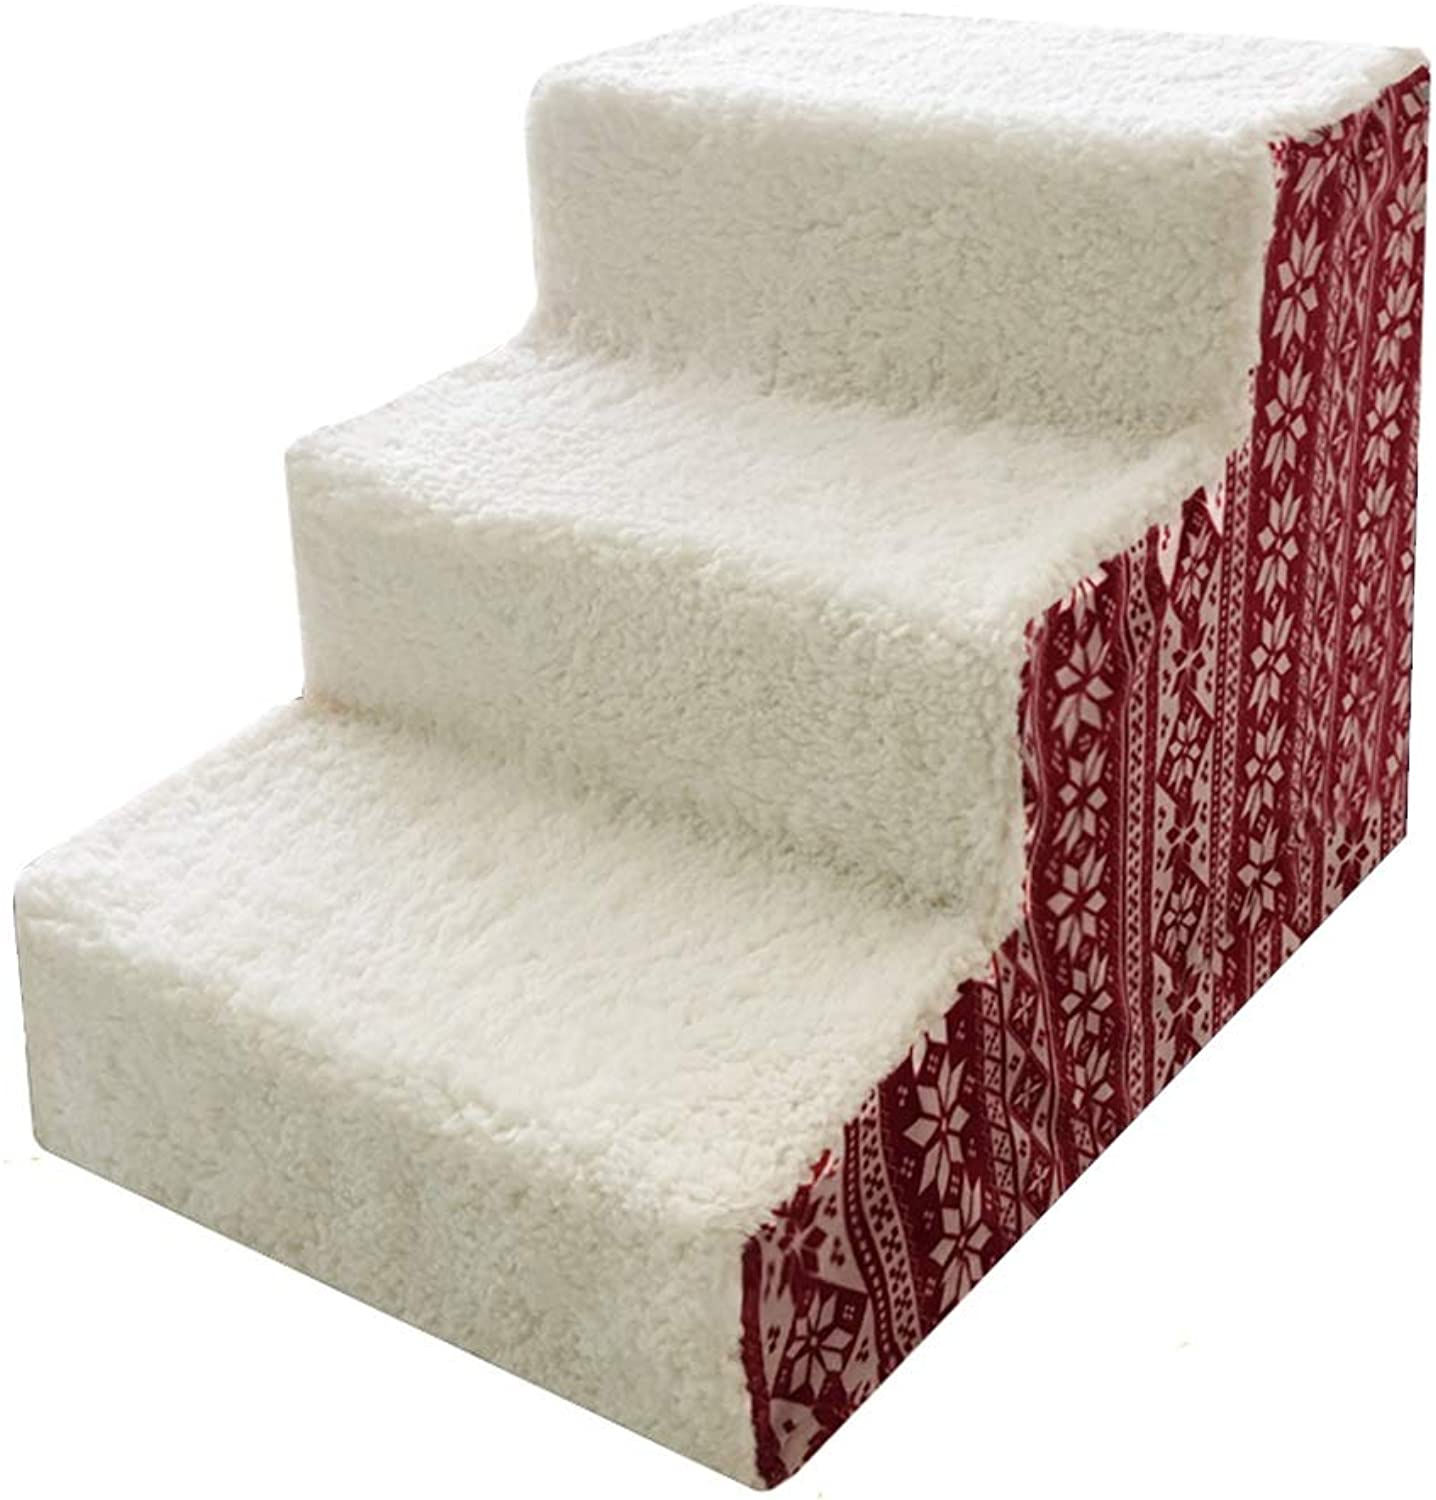 LXLA  Pet Bed Stairs, 3 Steps for Dogs Cats, Great for Living Room and Bedroom, Removable Washable, 60 × 40 × 40cm